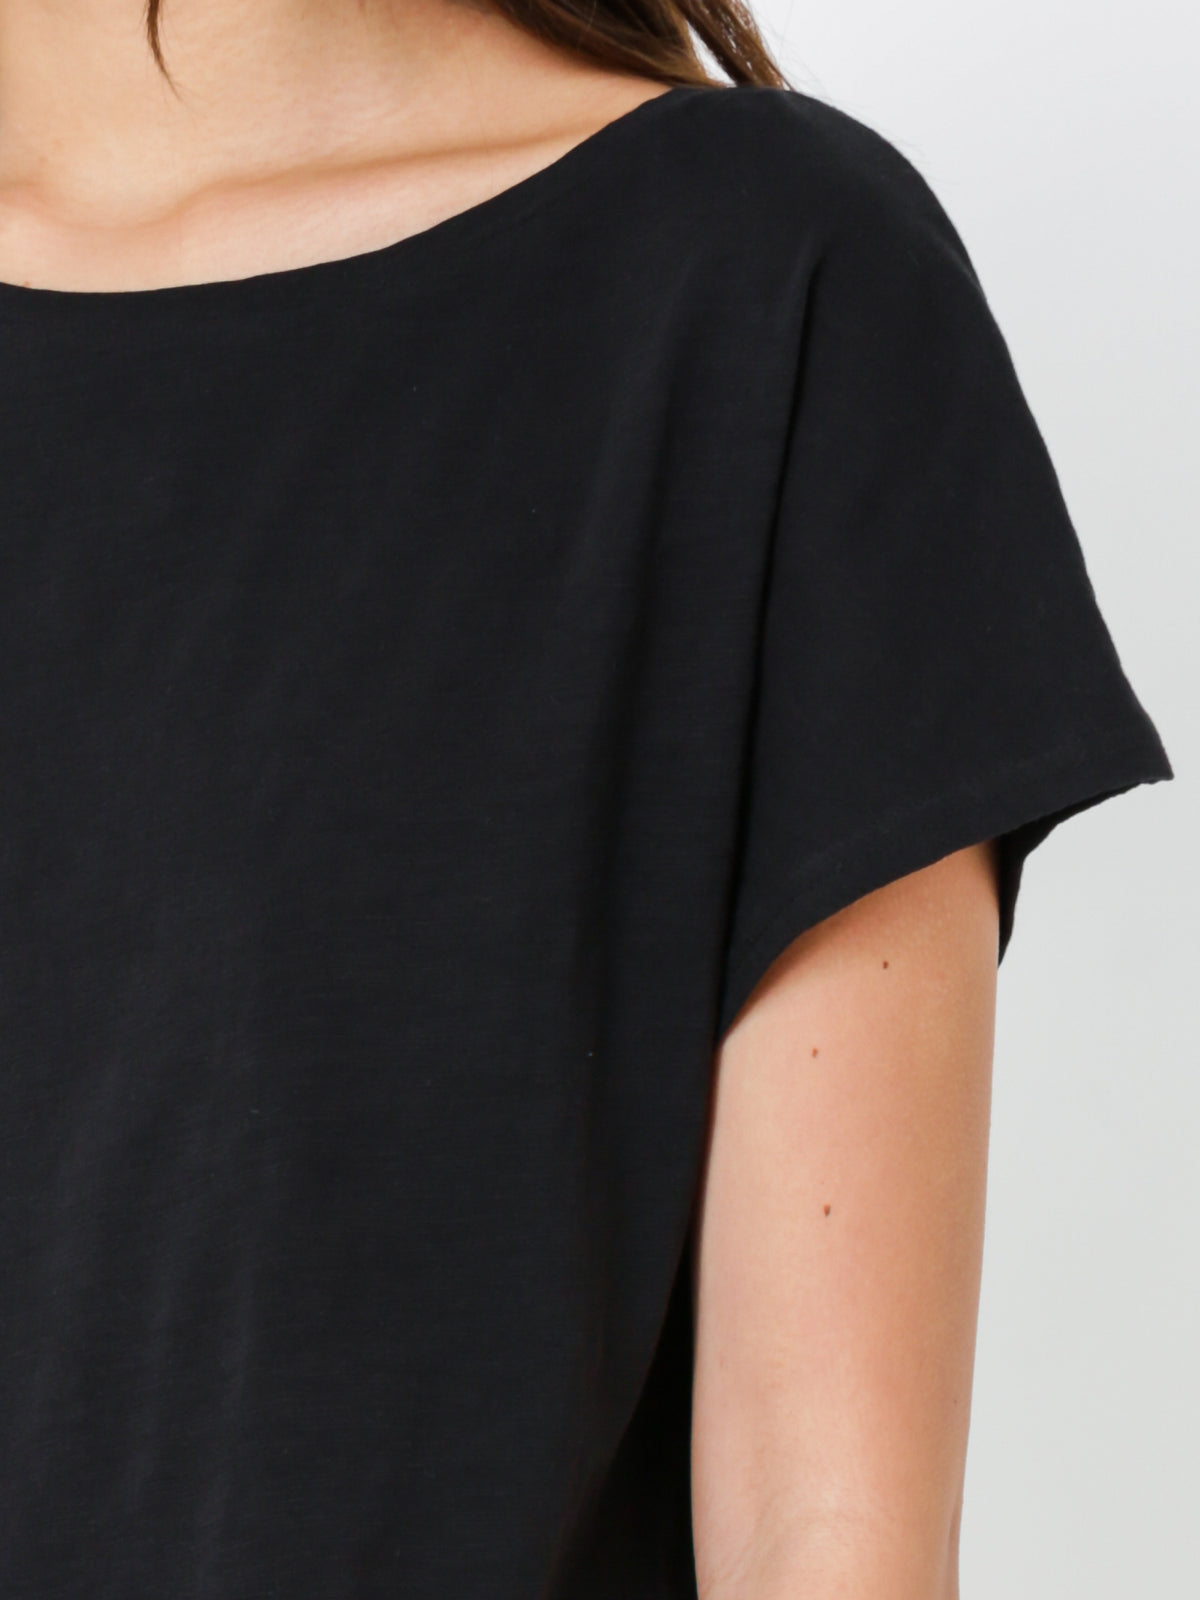 Kirkwood Crop T-Shirt in Black